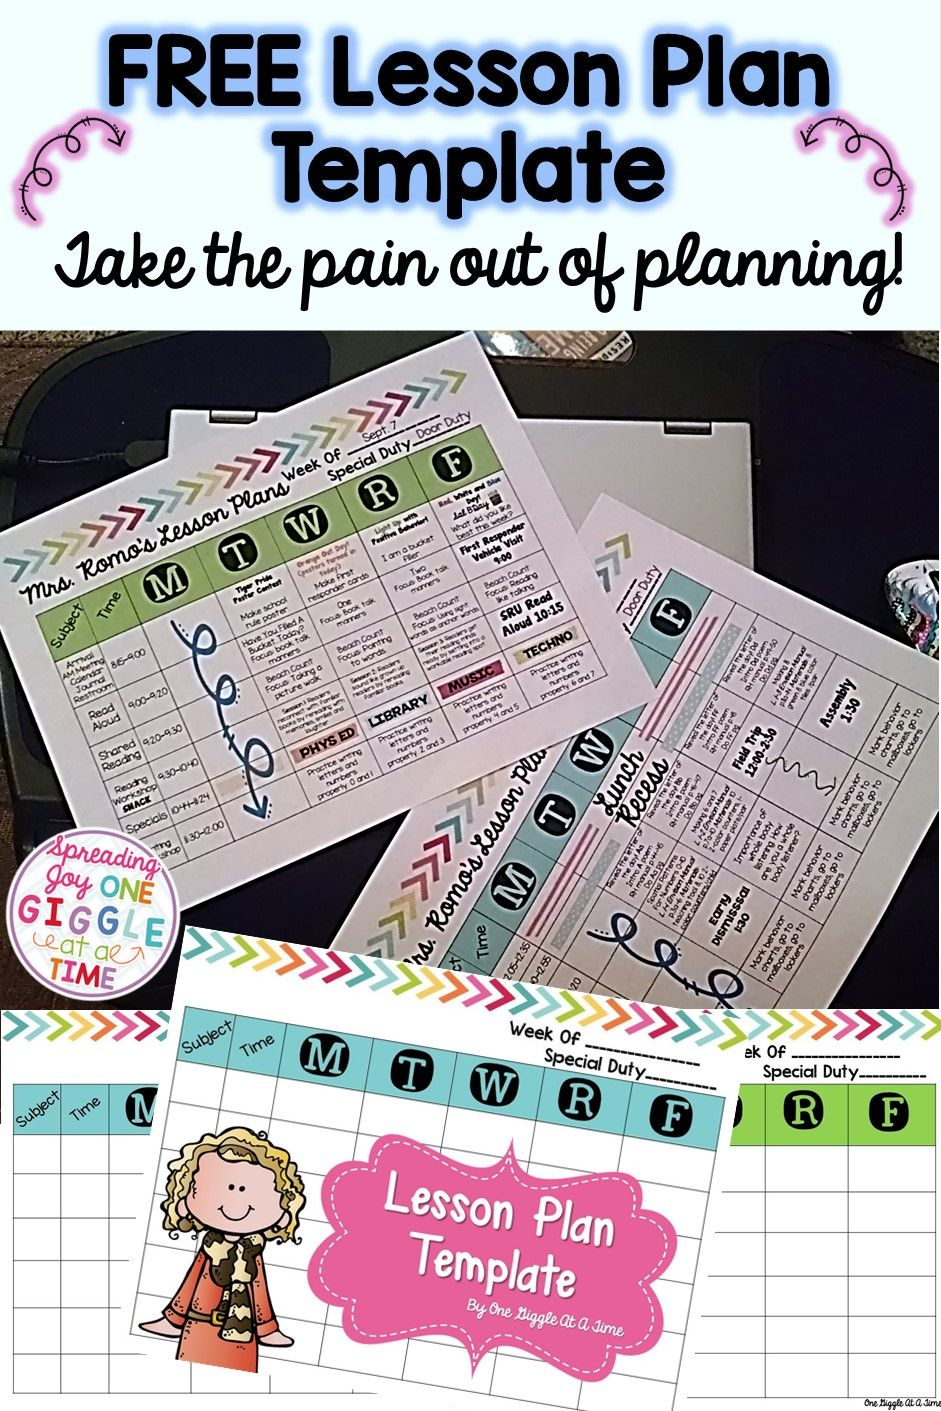 Lesson Plan Template in 2018   Organize It  School   Pinterest     It is always easier to plan when you have a pretty page to look at  FREE  LESSON PLAN TEMPLATE